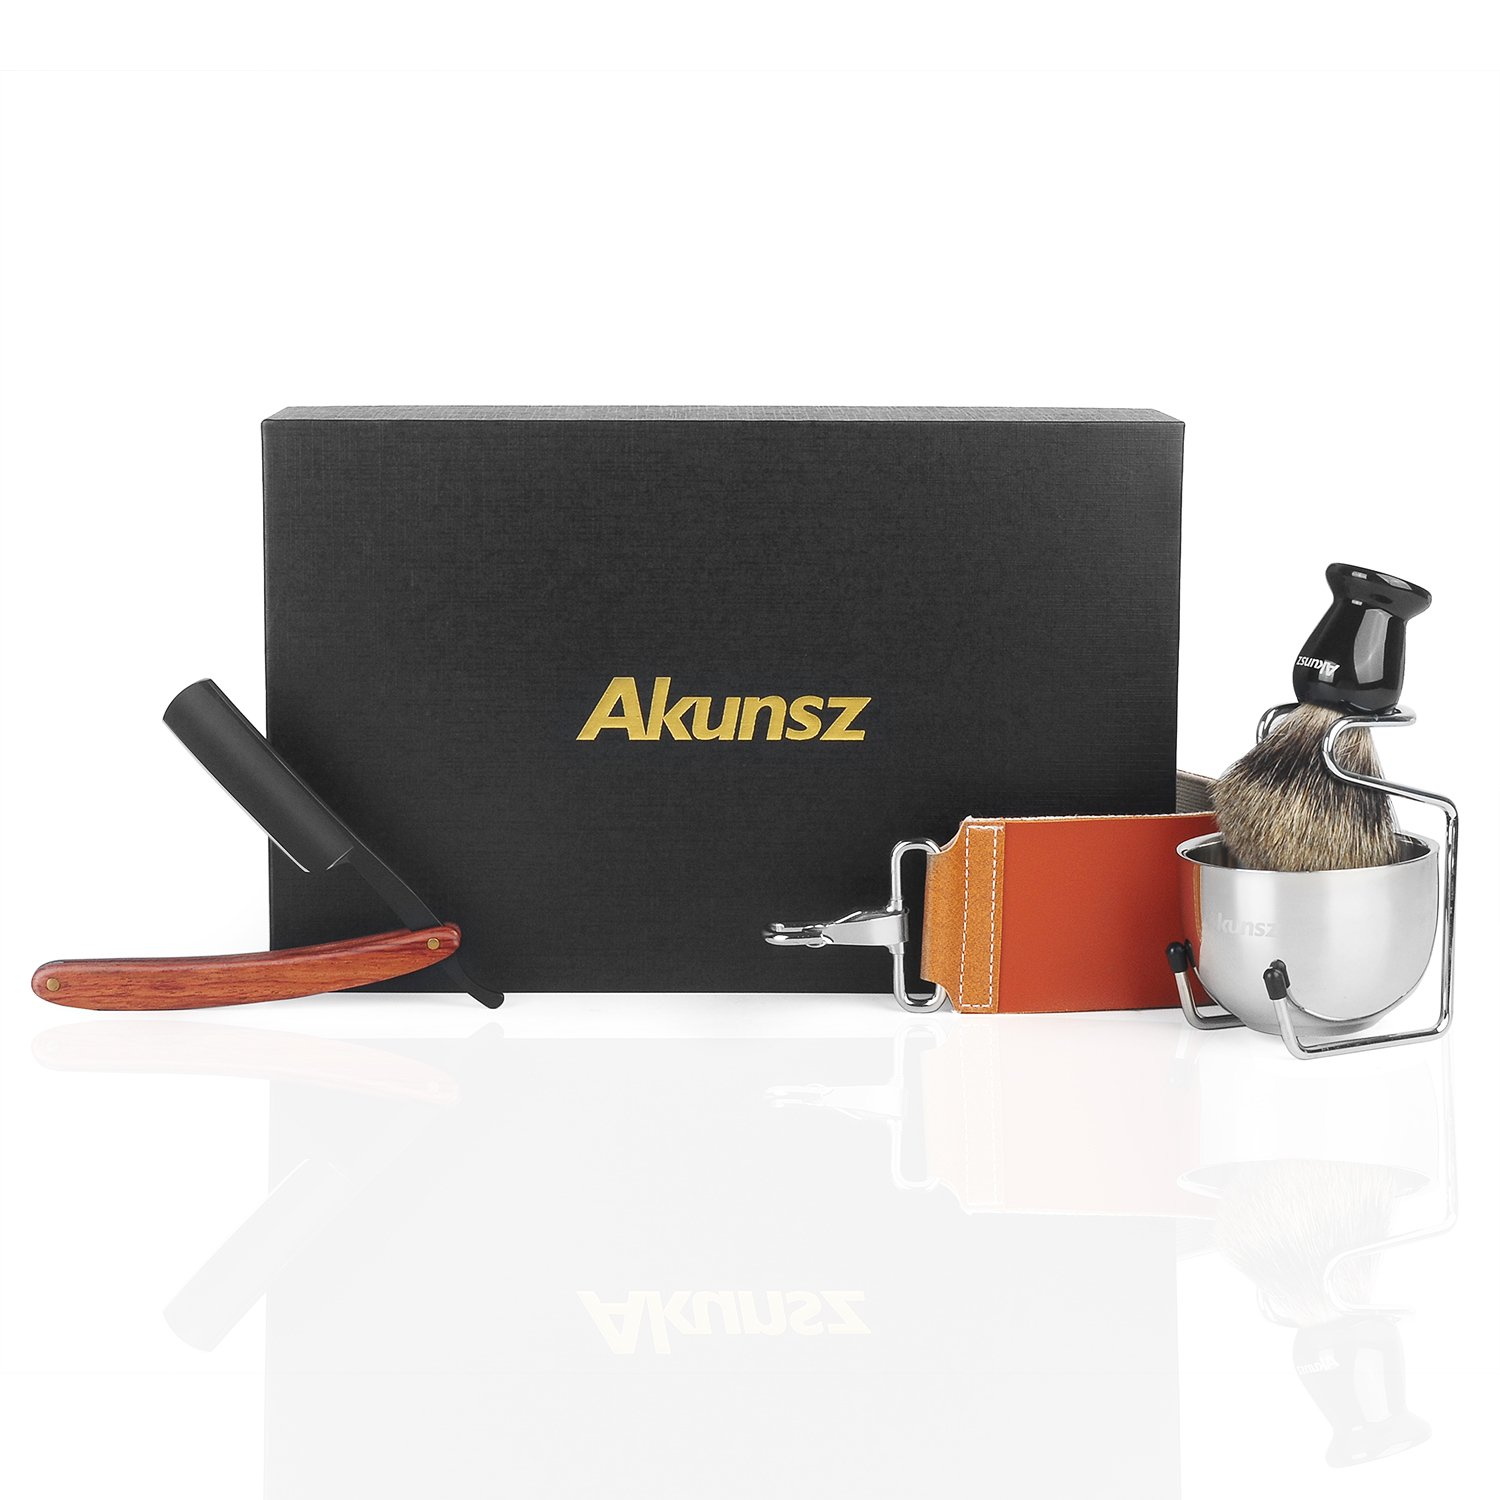 Straight Razor Kit AKUNSZ Black Shaving Kit for Men Straight Edge Razor with Shave Brush and Bowl - Leather Strop, Pure Badger Shaving Brush, Shave Bowl, Shaving Stand - 5 PCS Shave Kit